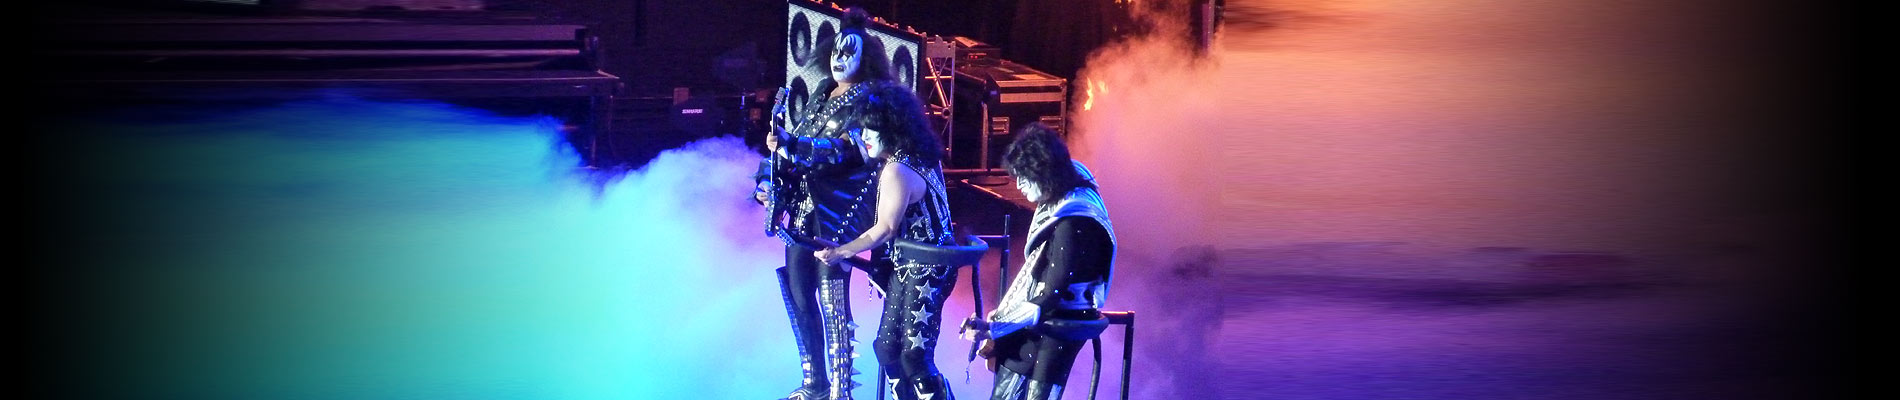 Kiss Birmingham Al April 13 2019 Tickets